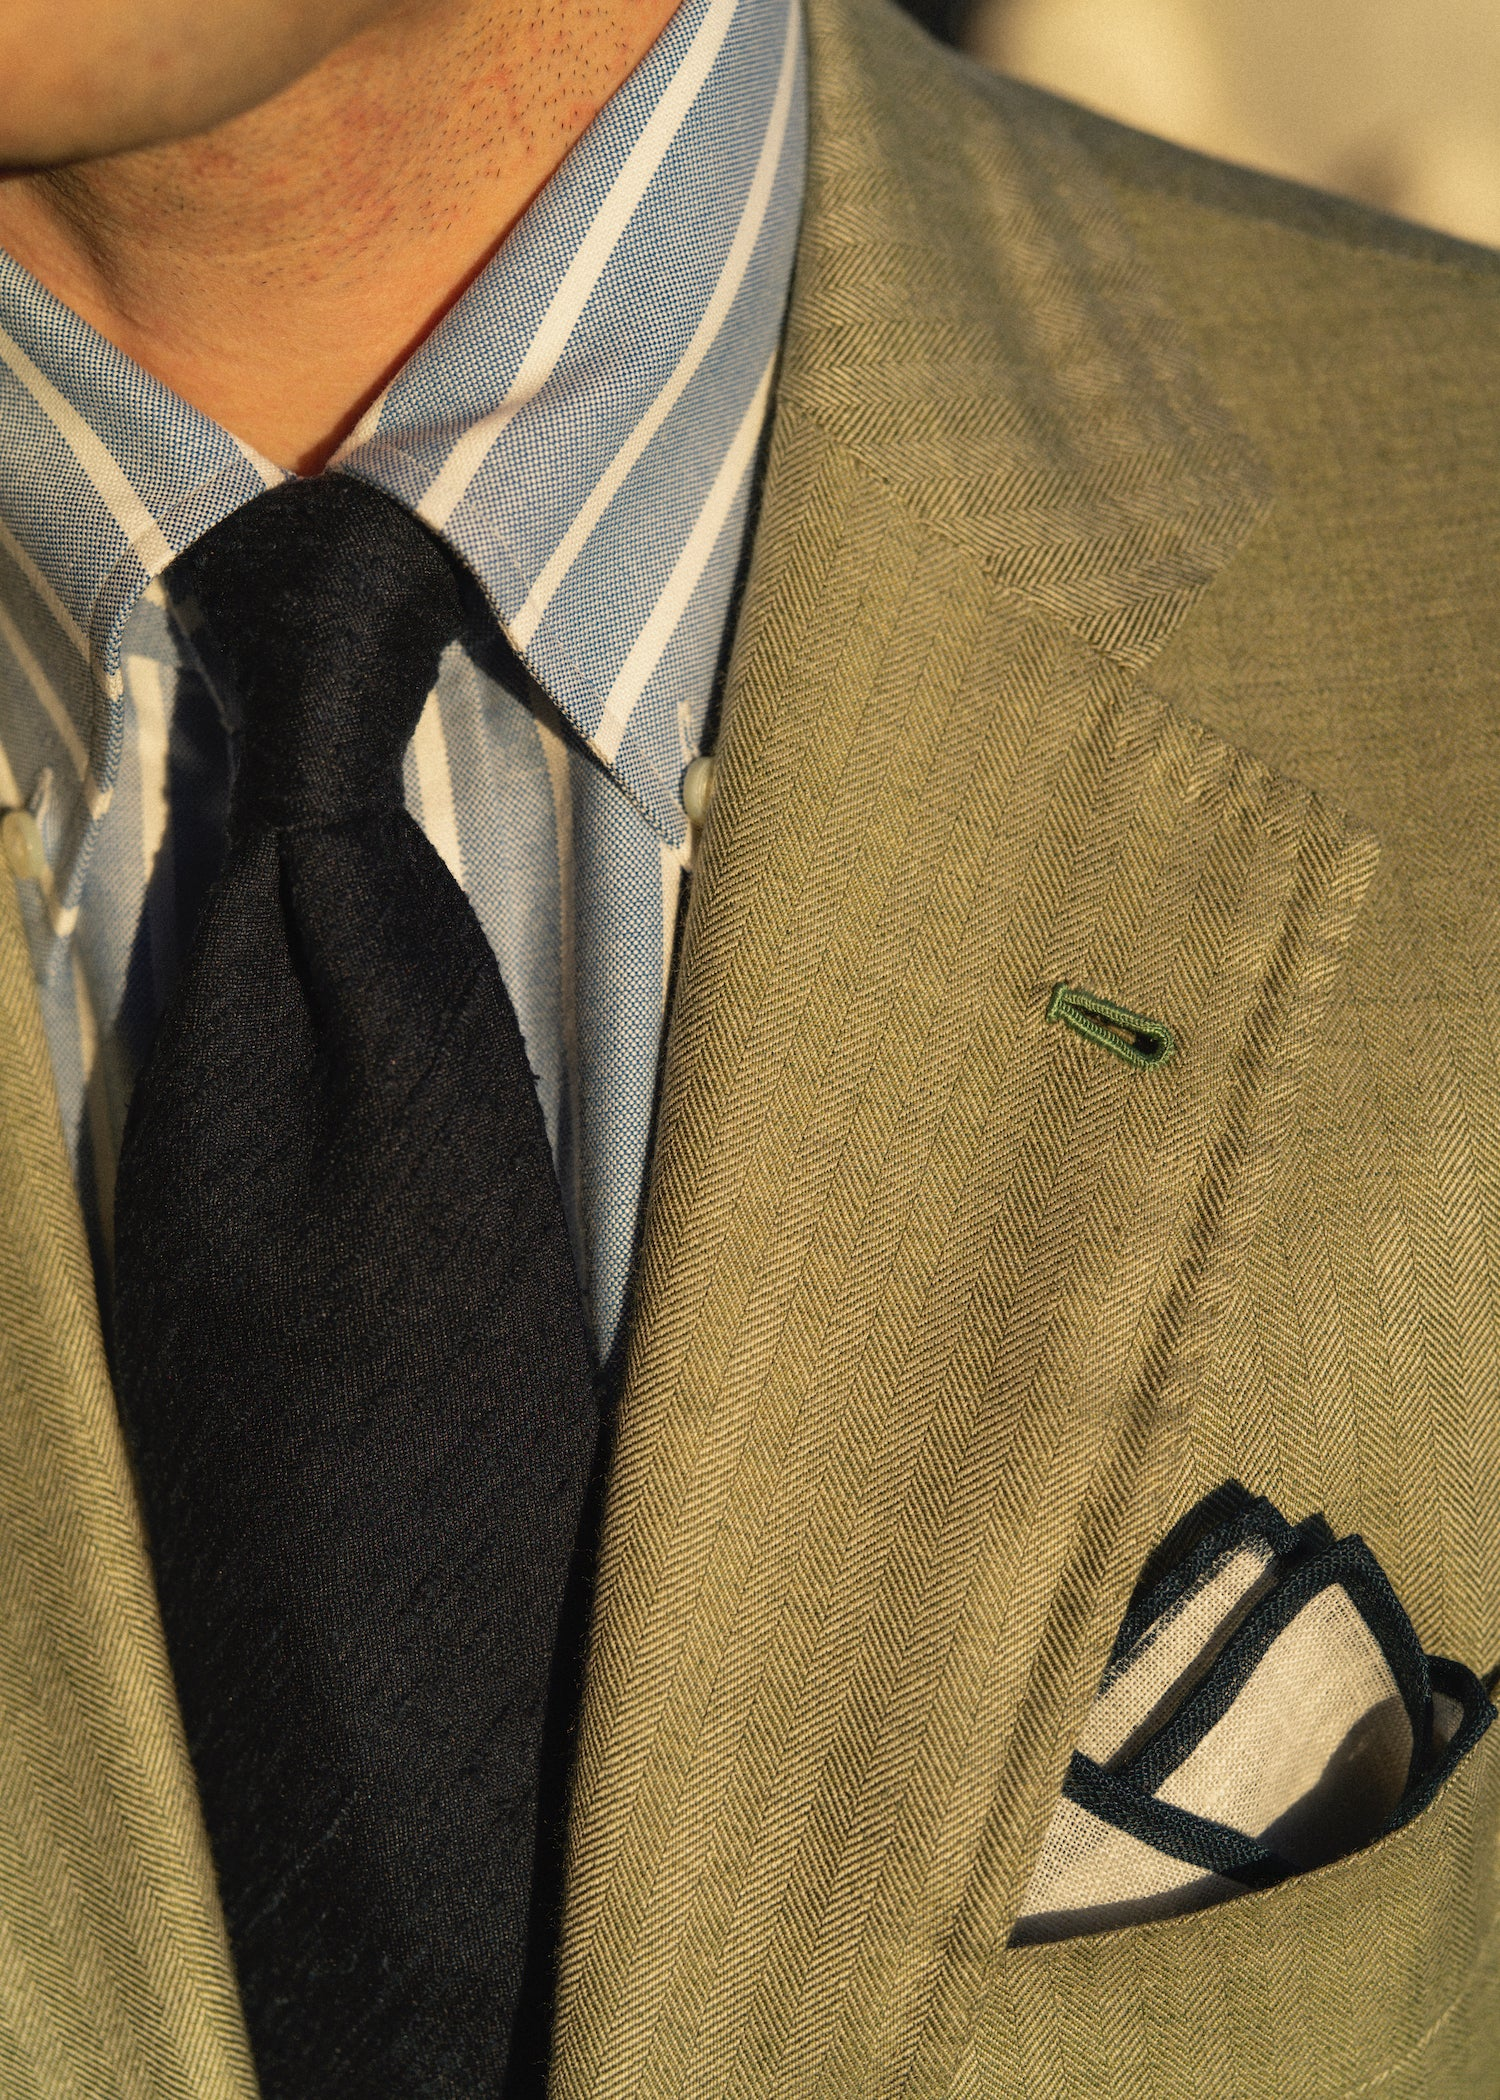 Handmade jacket with blue reverse striped oxford cloth button down shirt and navy shantung tie